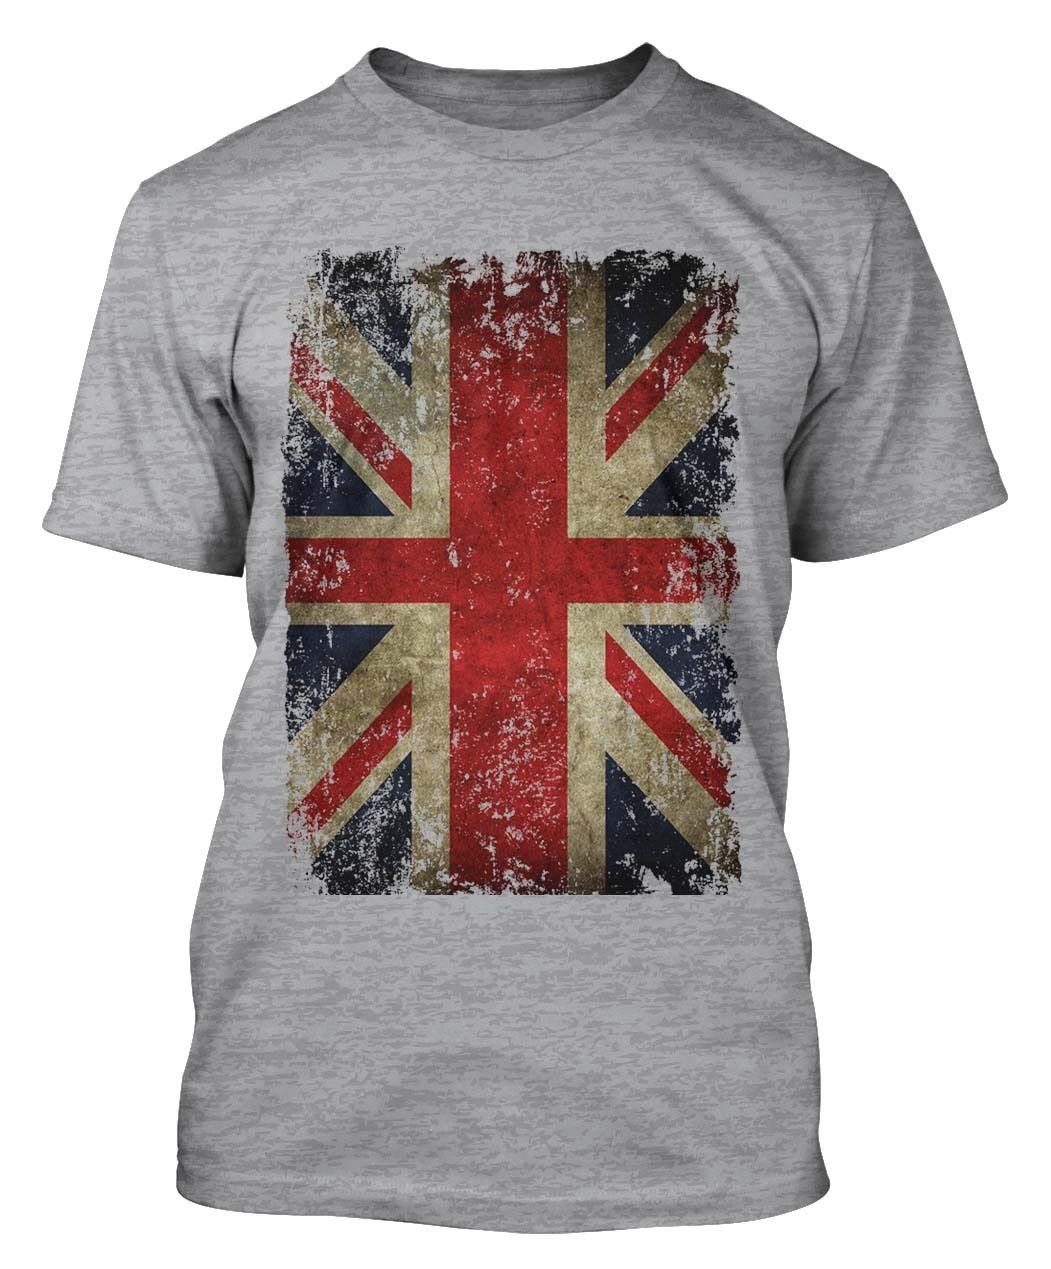 UNION JACK T-SHIRT DISTRESSED GRUNGE VINTAGE UK BRITISH FLAG GREAT BRITAIN Summer Short Sleeves Cotton Fashion